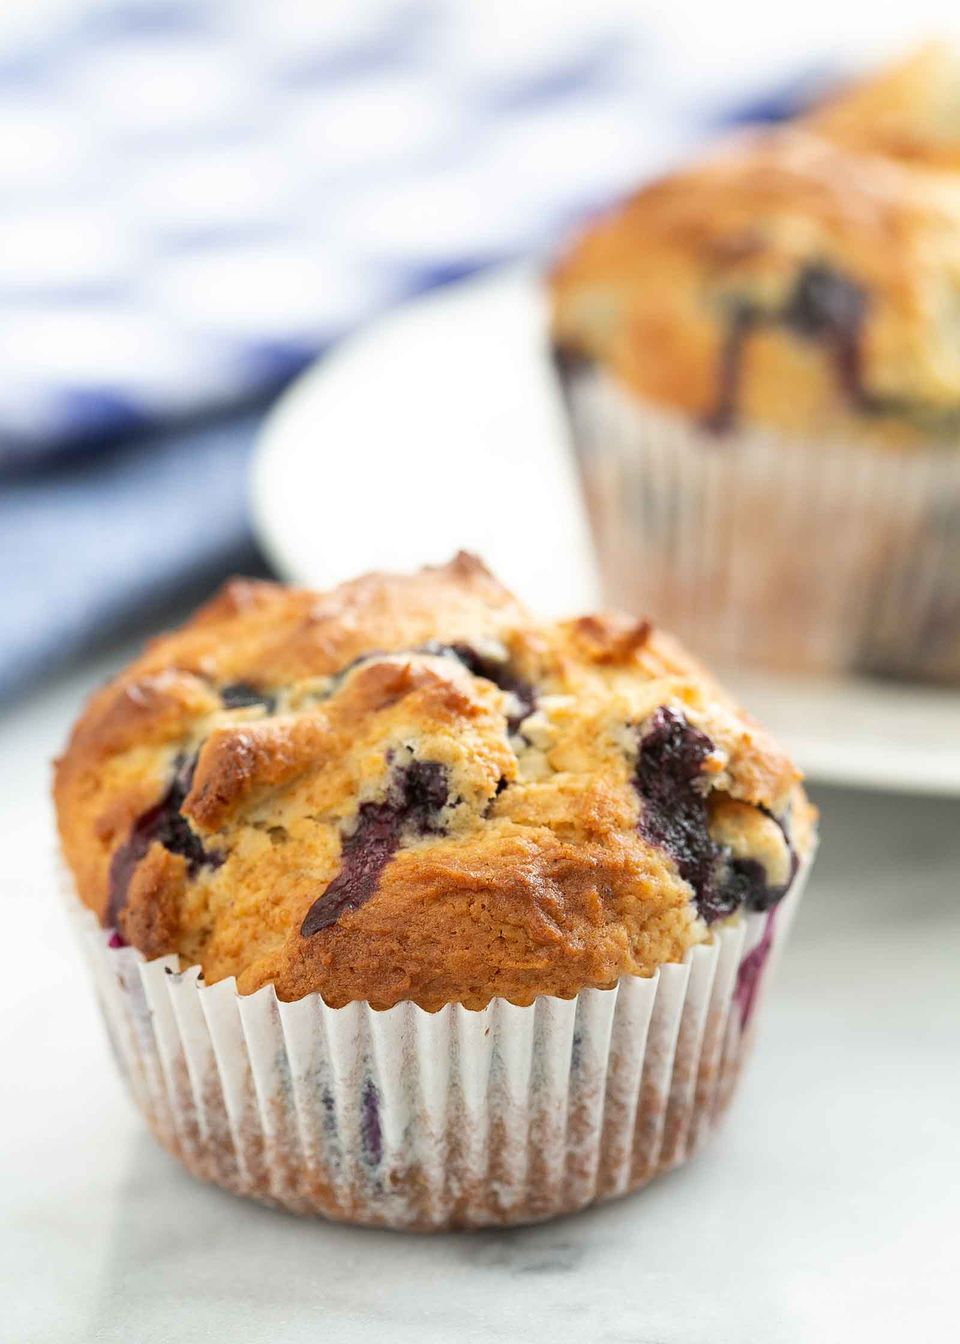 Easy Blueberry Muffins fresh from the oven